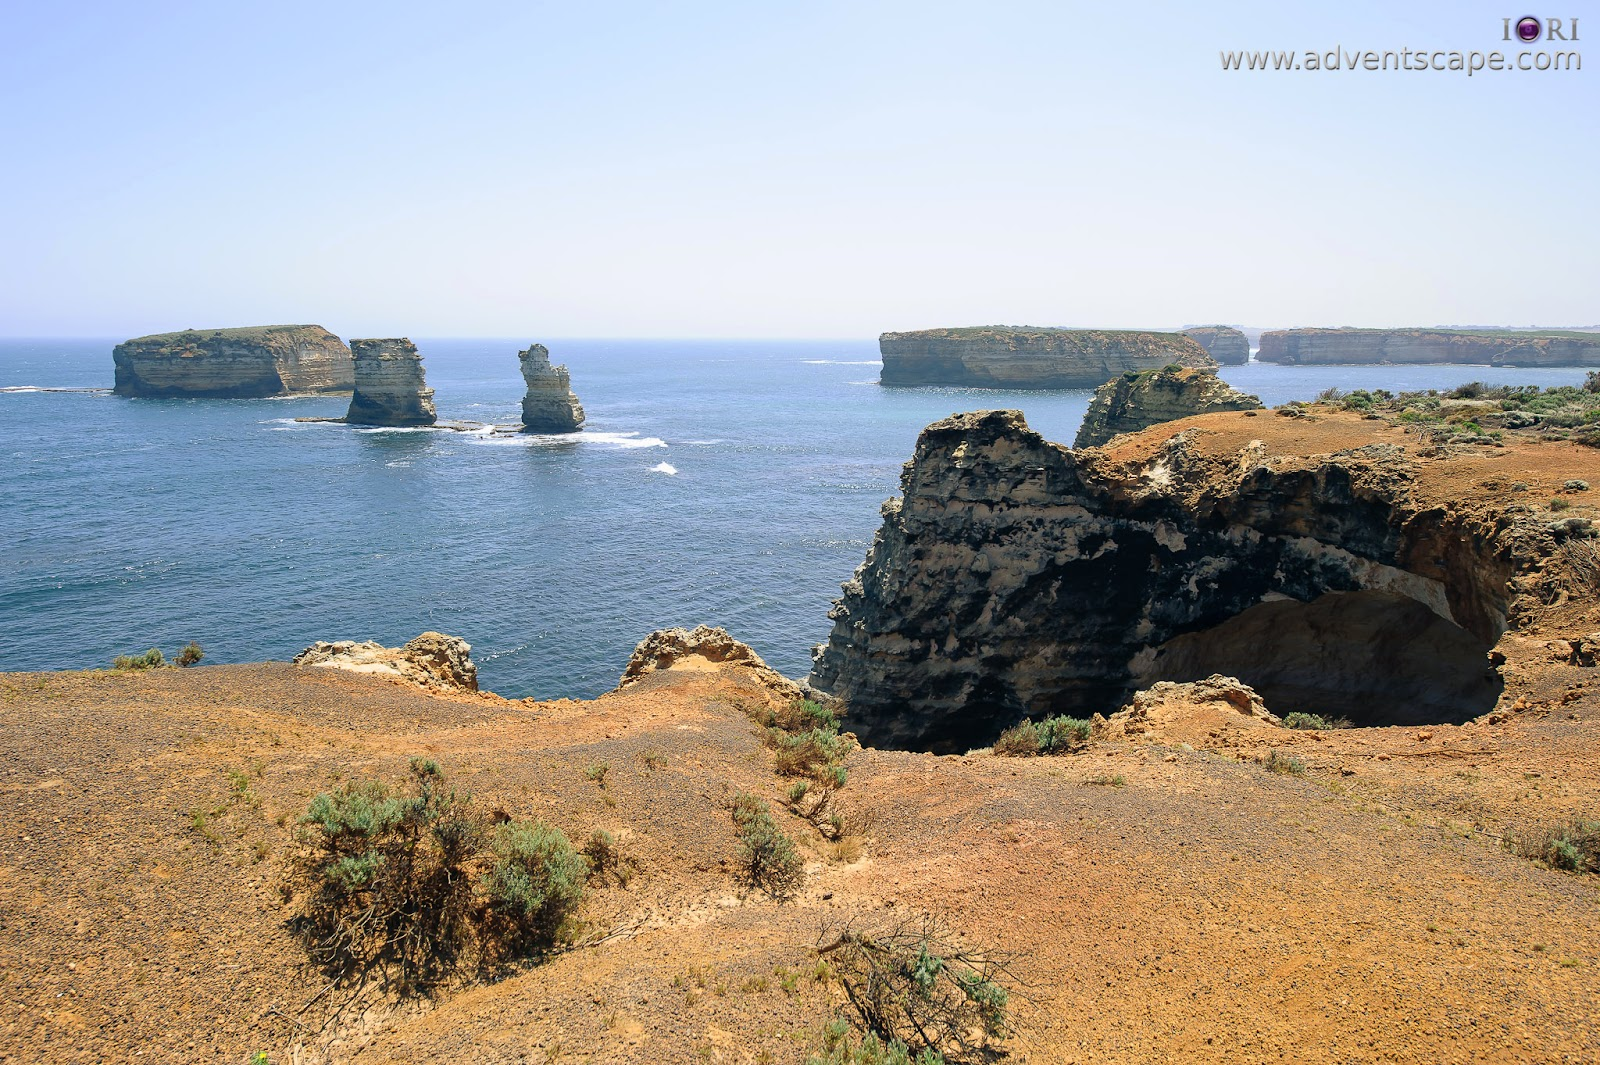 australia, Australian Landscape Photographer, Bay of Islands, Great Ocean Road, Peterborough, Philip Avellana, victoria, Warrnambool, rock formation, coastline, Apollo Bay, lookout